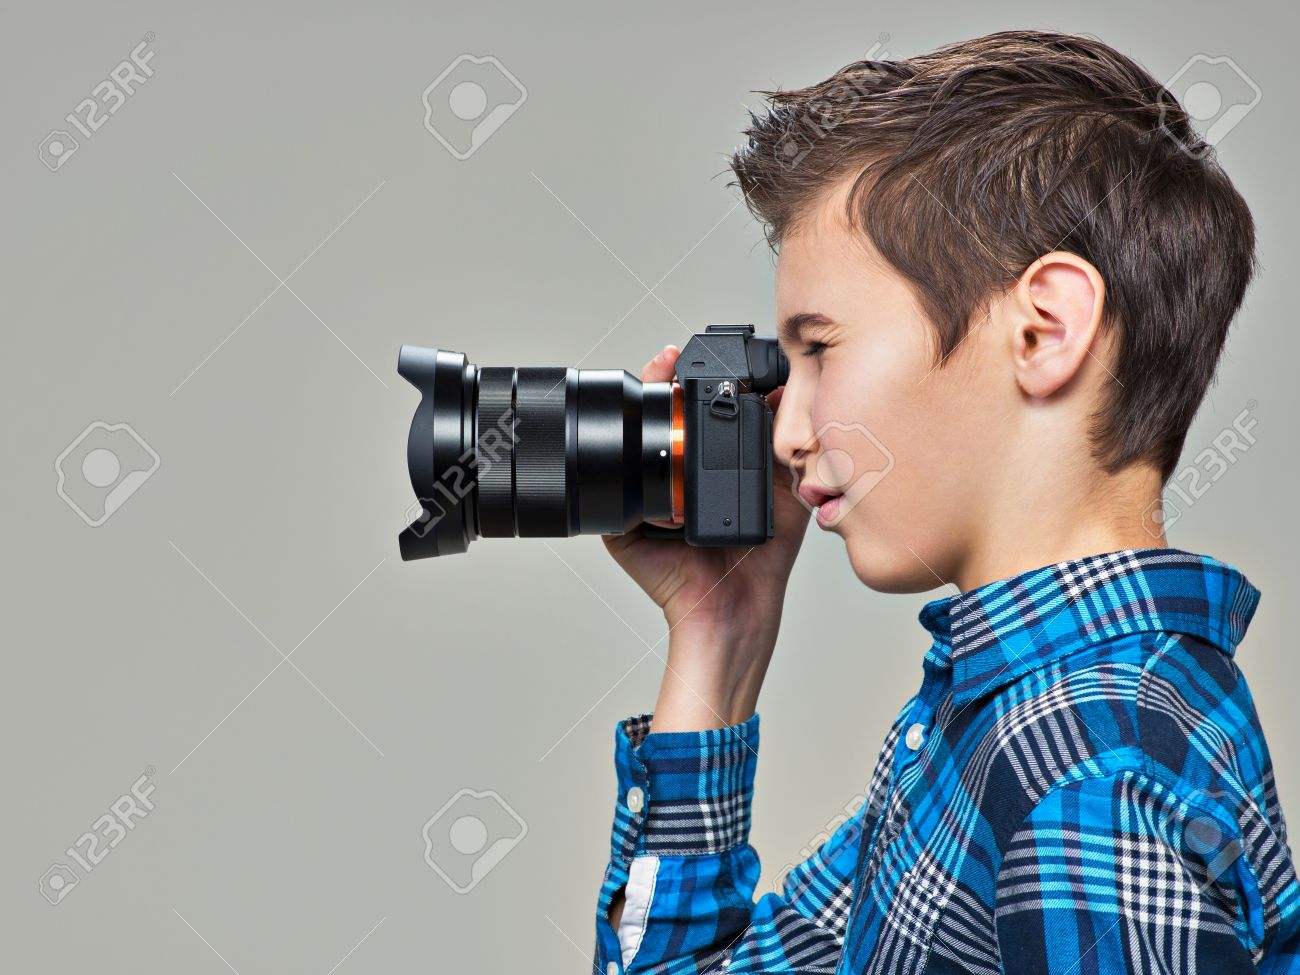 Boy With Photo Camera Taking Pictures Teen Boy With Dslr Camera